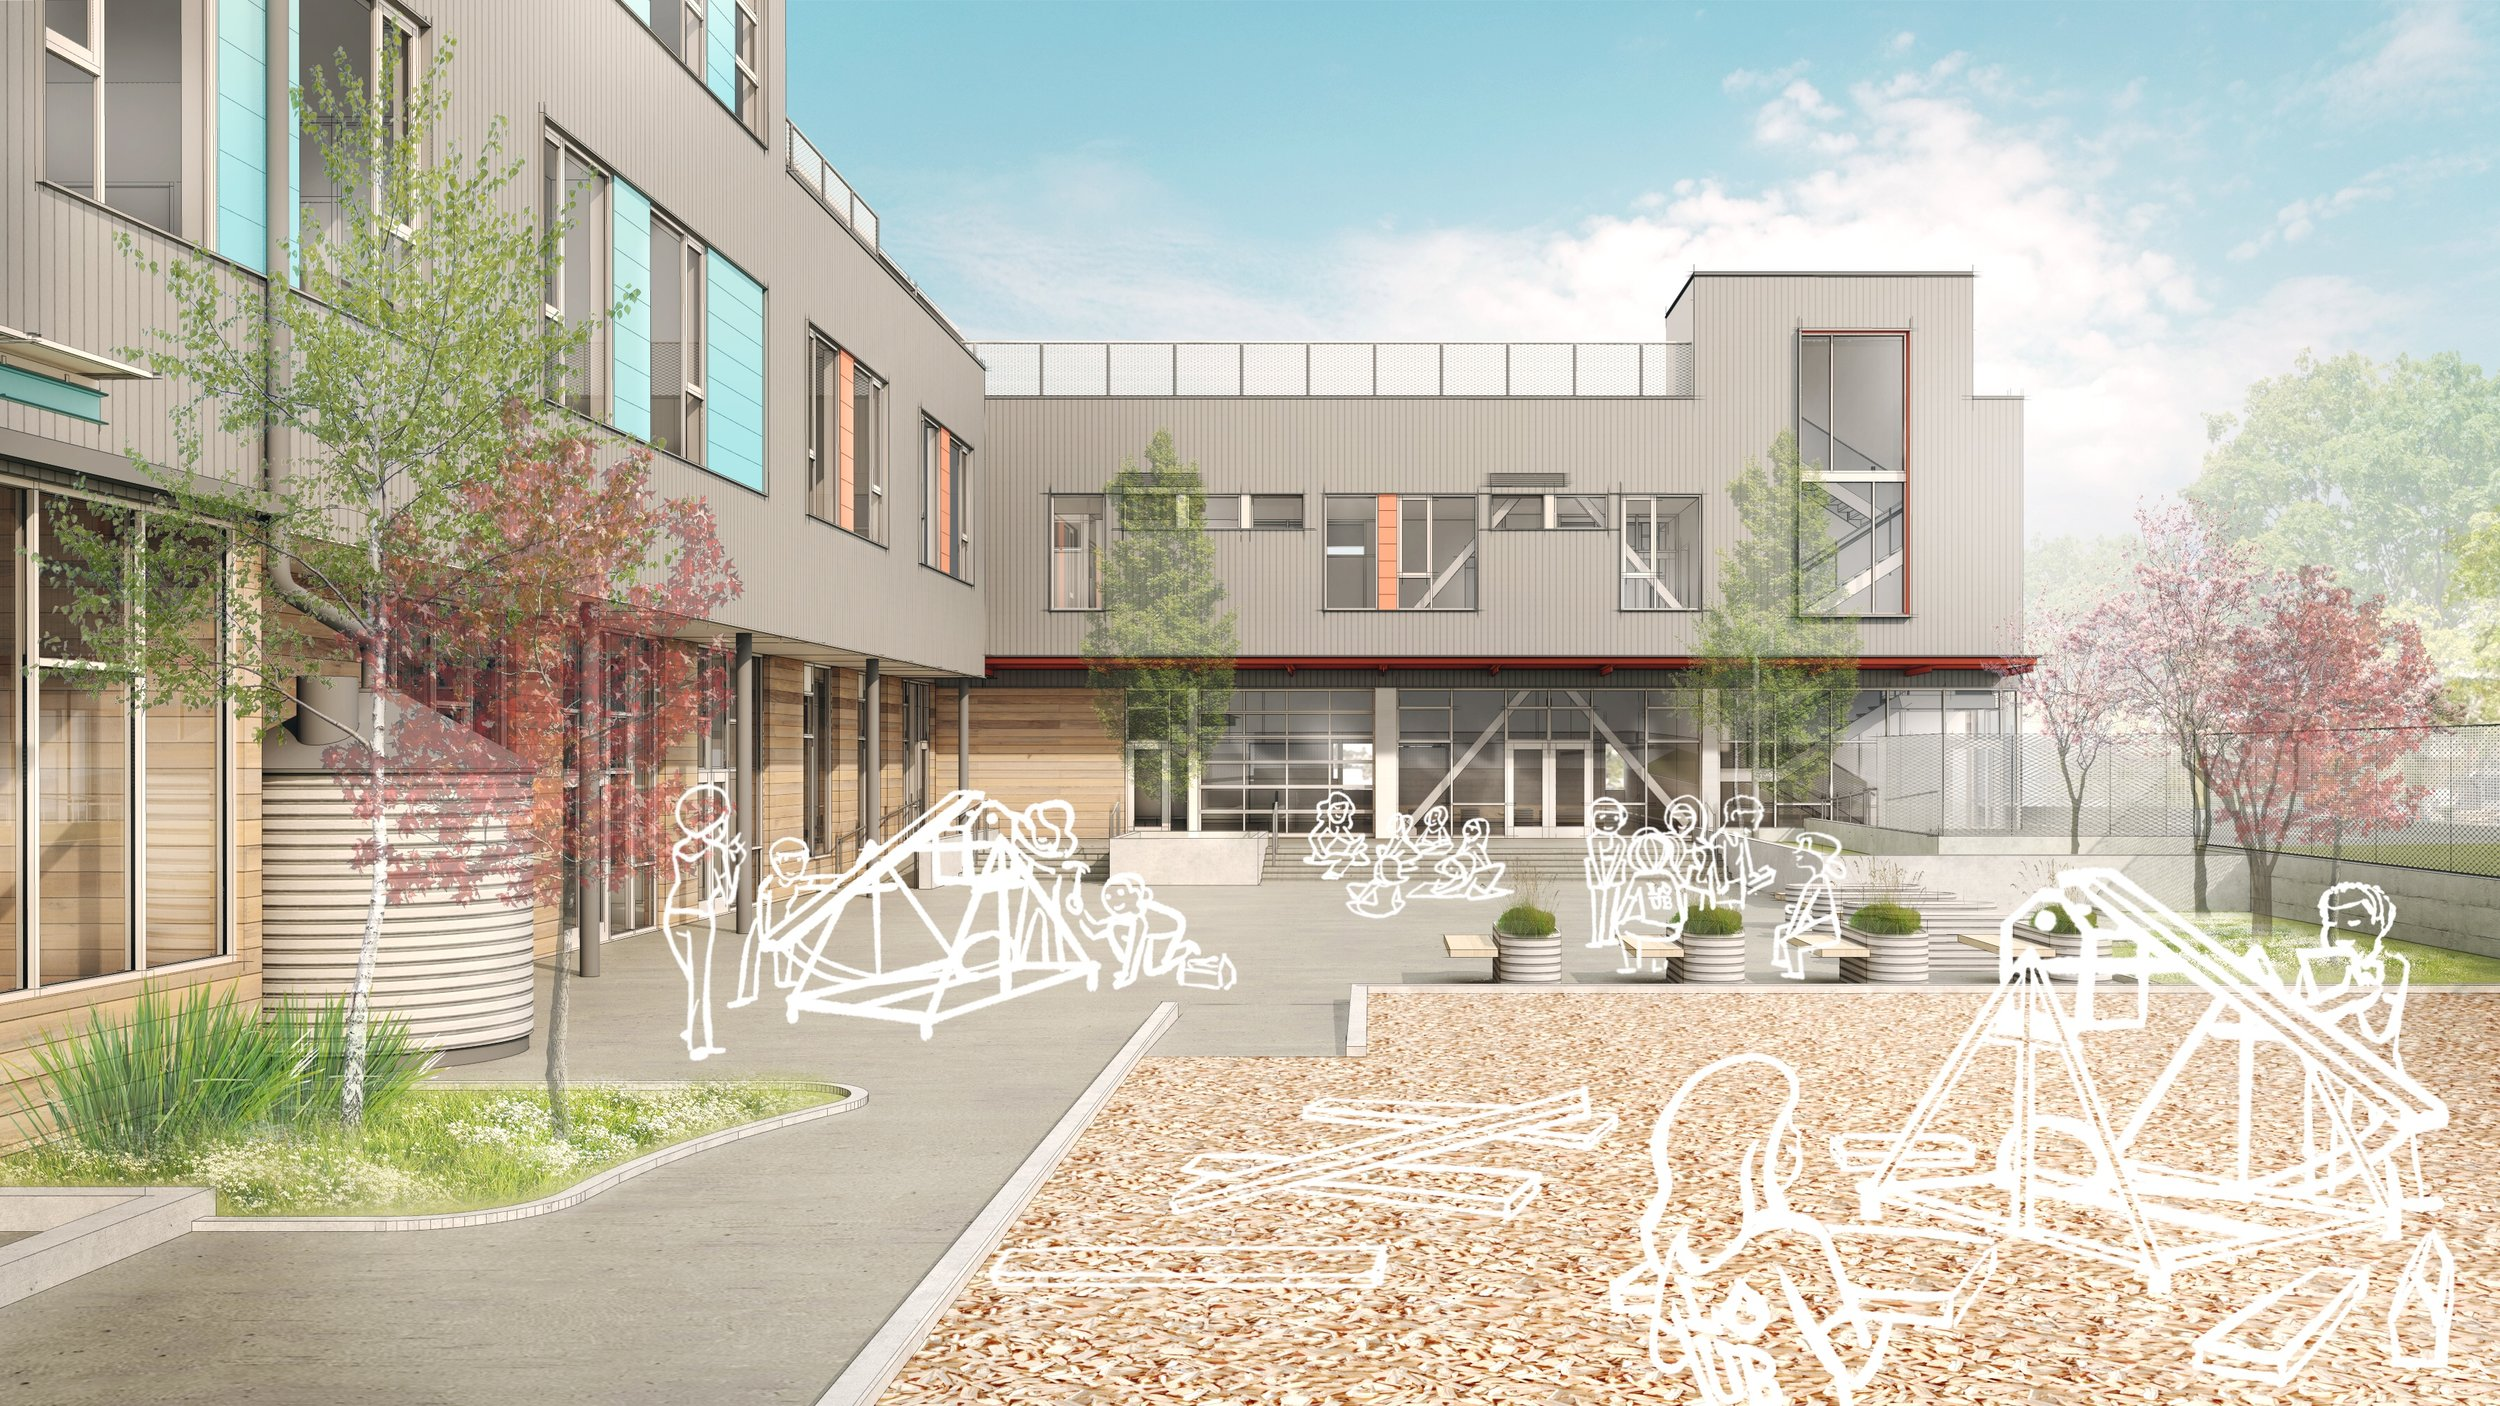 Two+Schools+Courtyard+with+Students.jpg